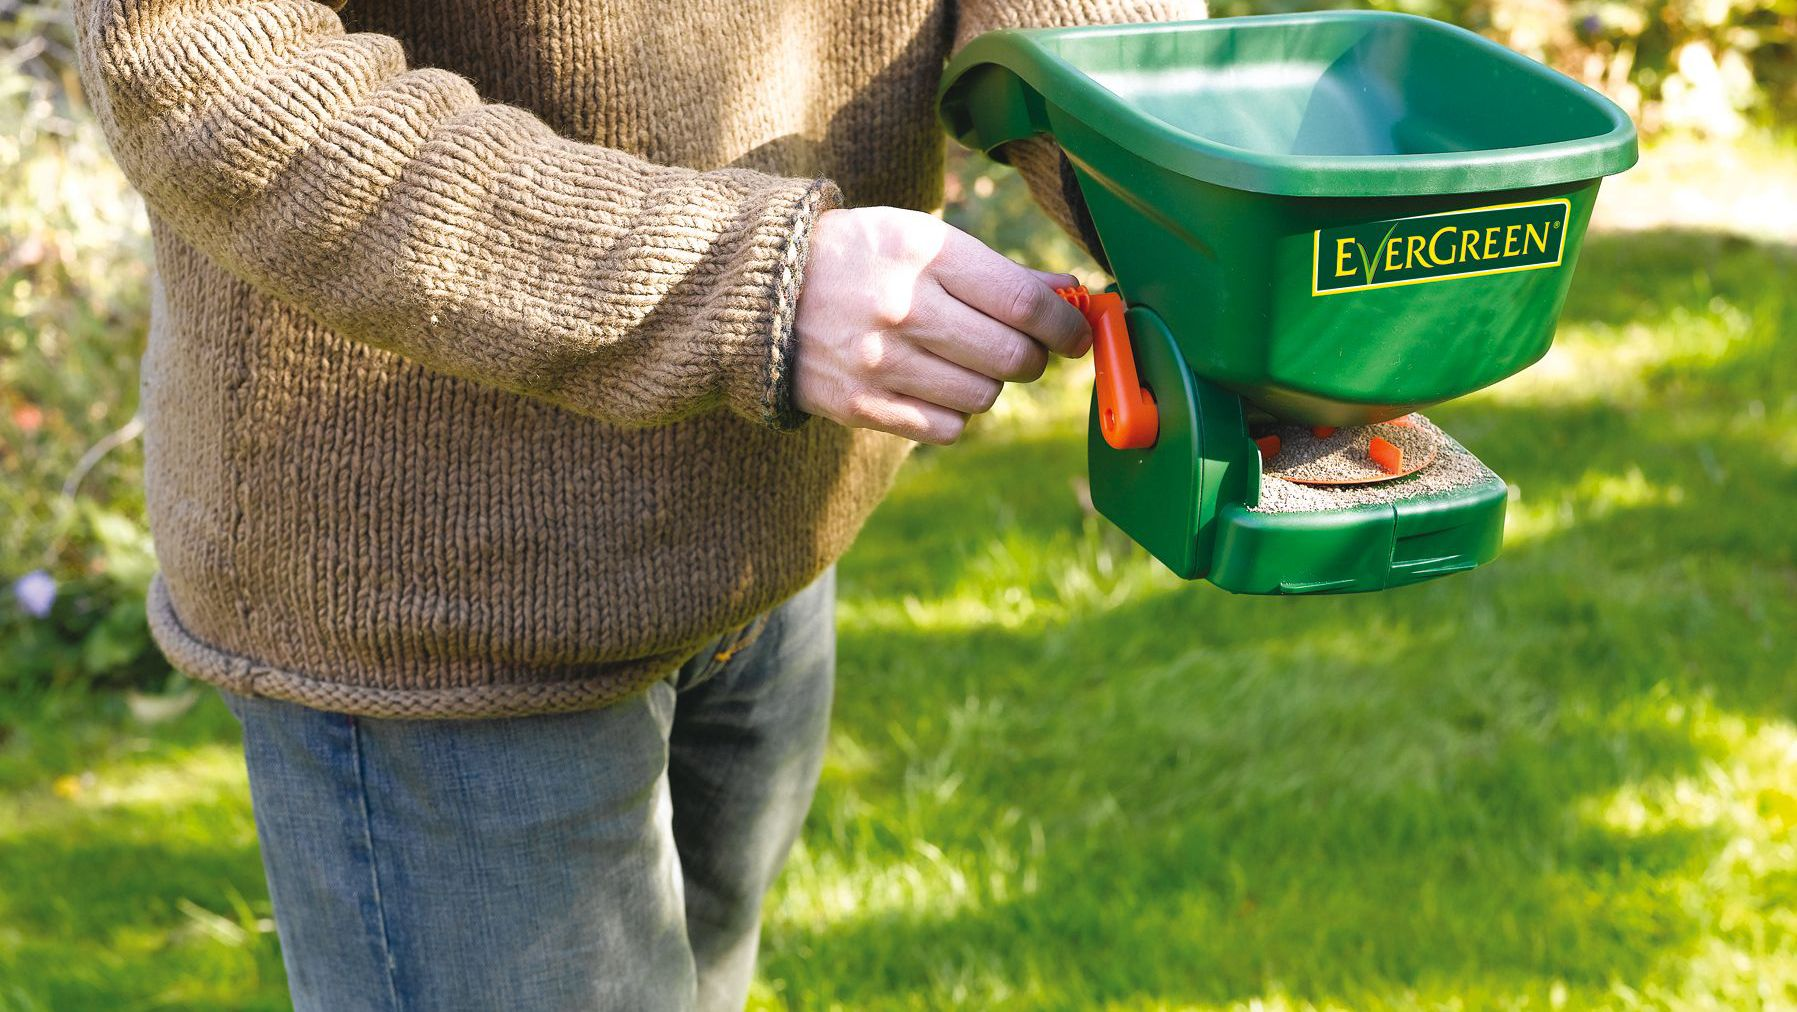 spreading grass seed